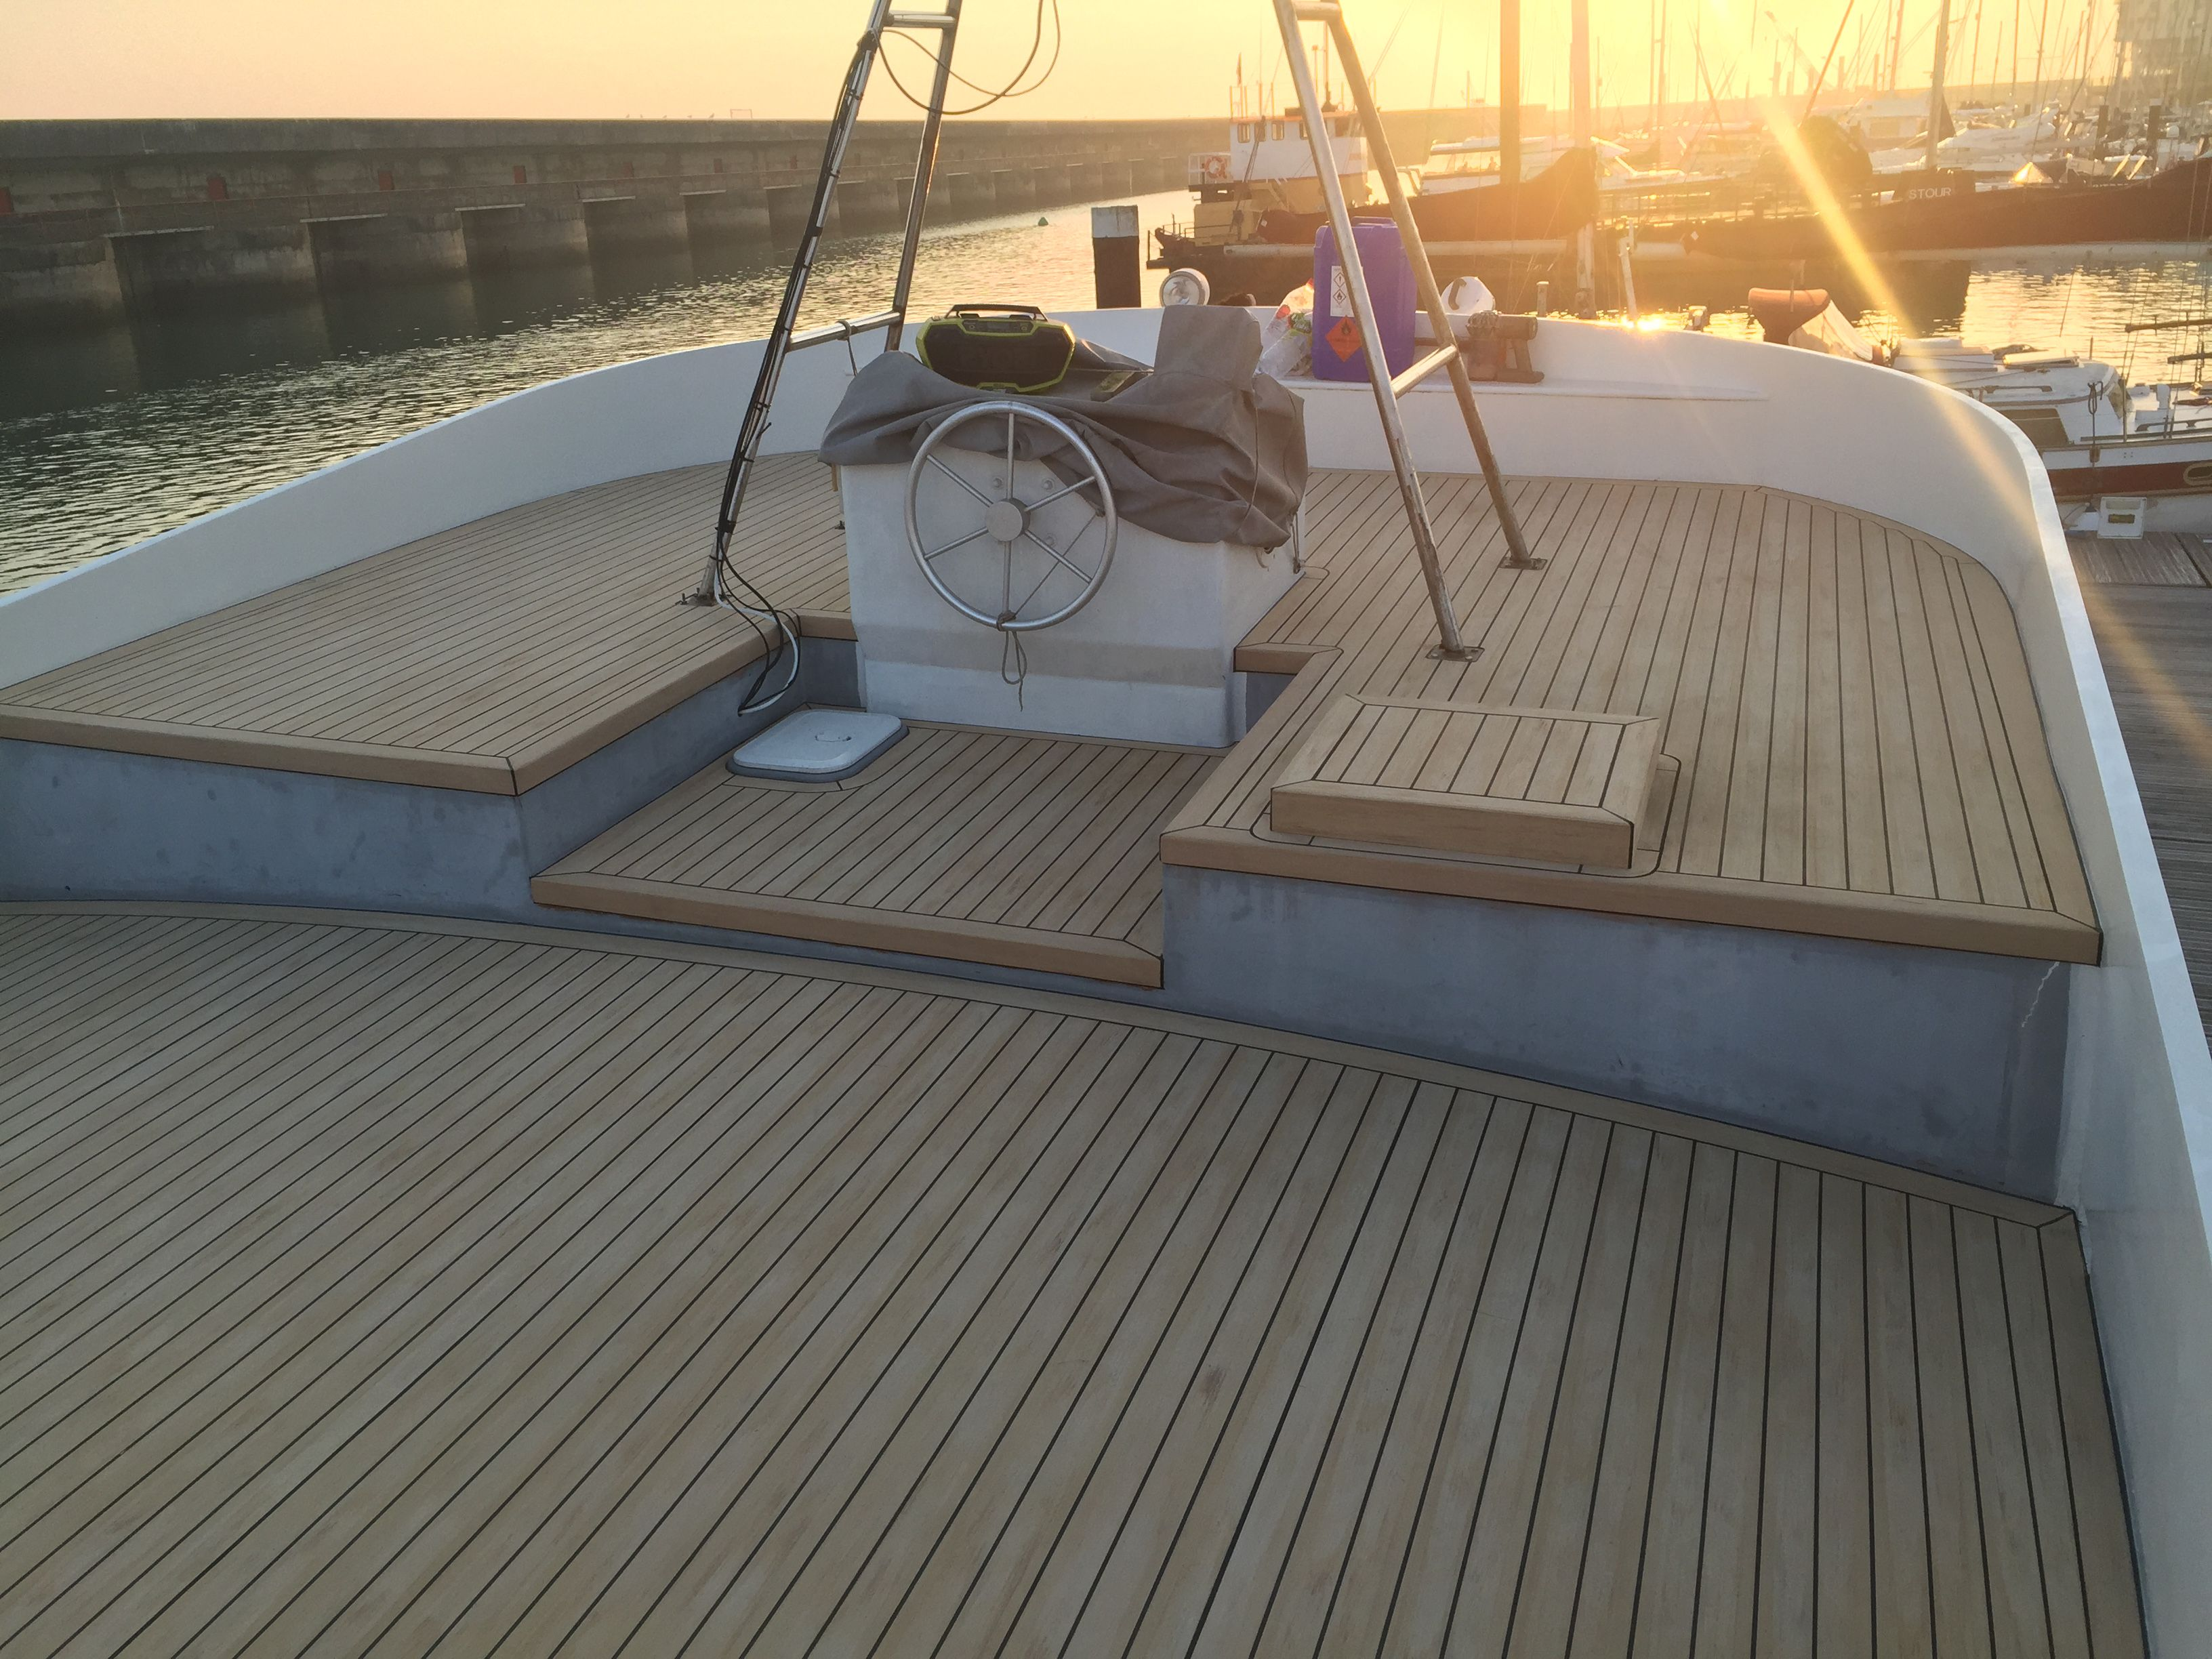 boat floor covering ideas, boat floor deck without repairs ...